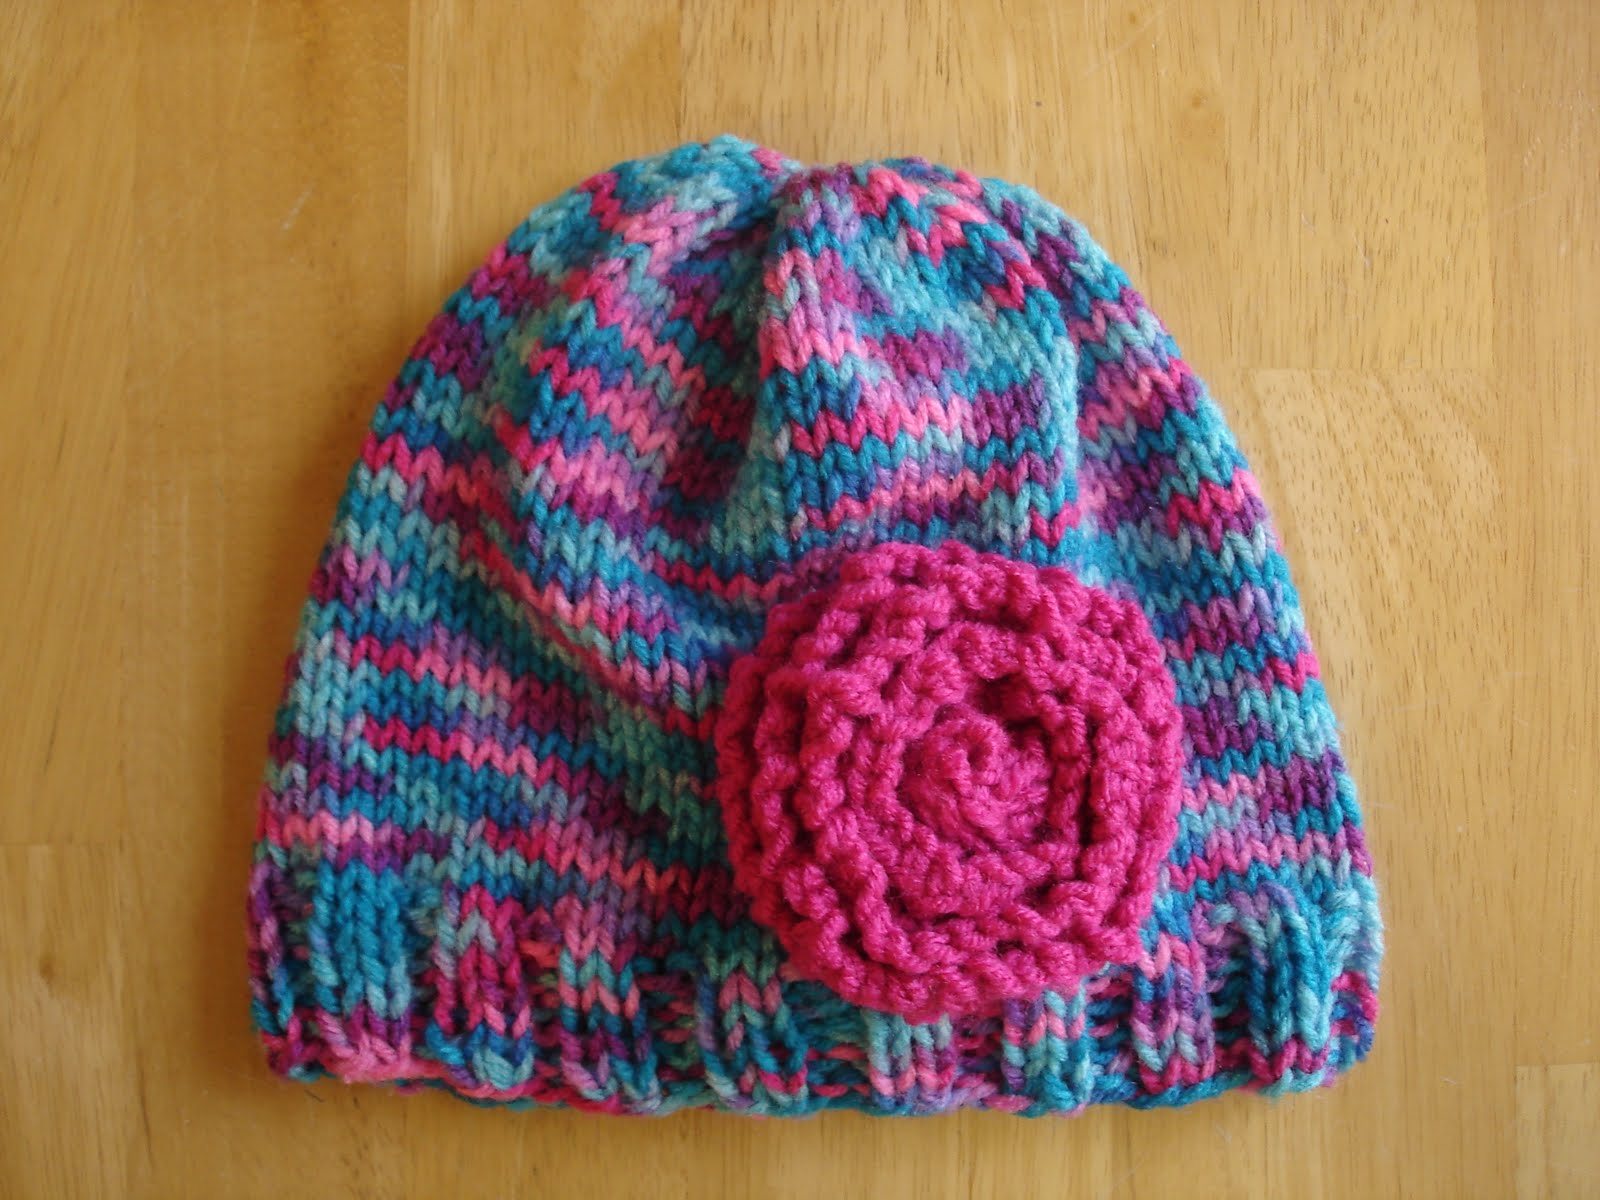 Free Knitting Patterns For Toddler Hats On Straight Needles : Fiber Flux: Free Knitting Pattern! Cotton Candy Hat